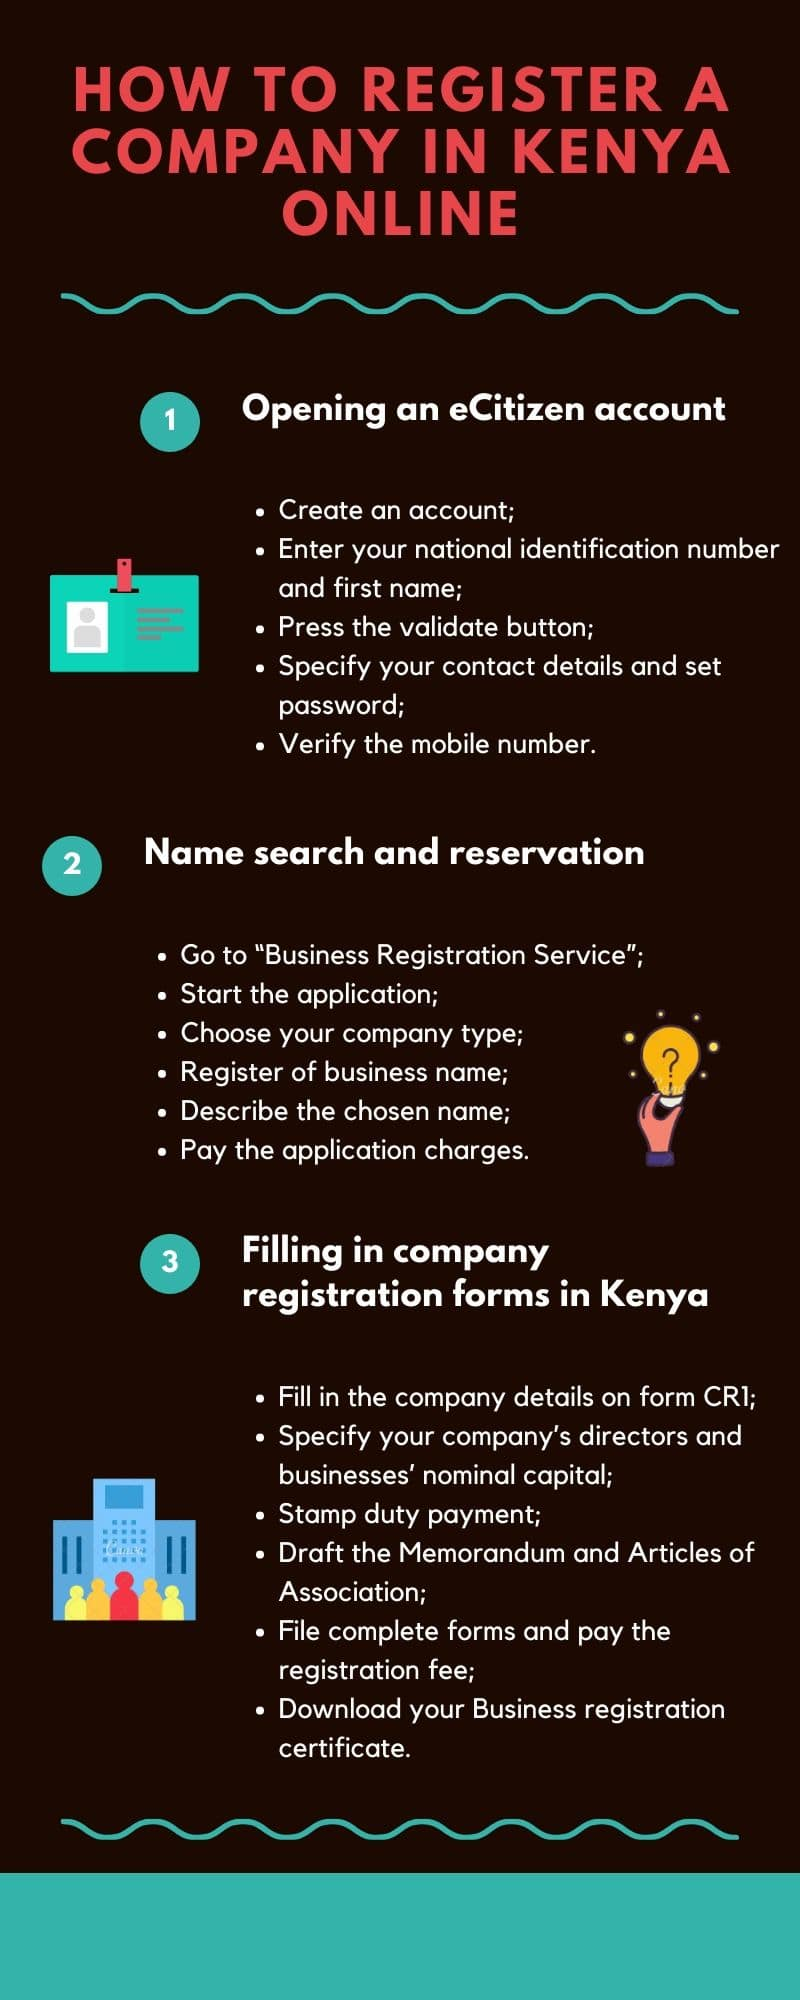 How to register a company in Kenya online